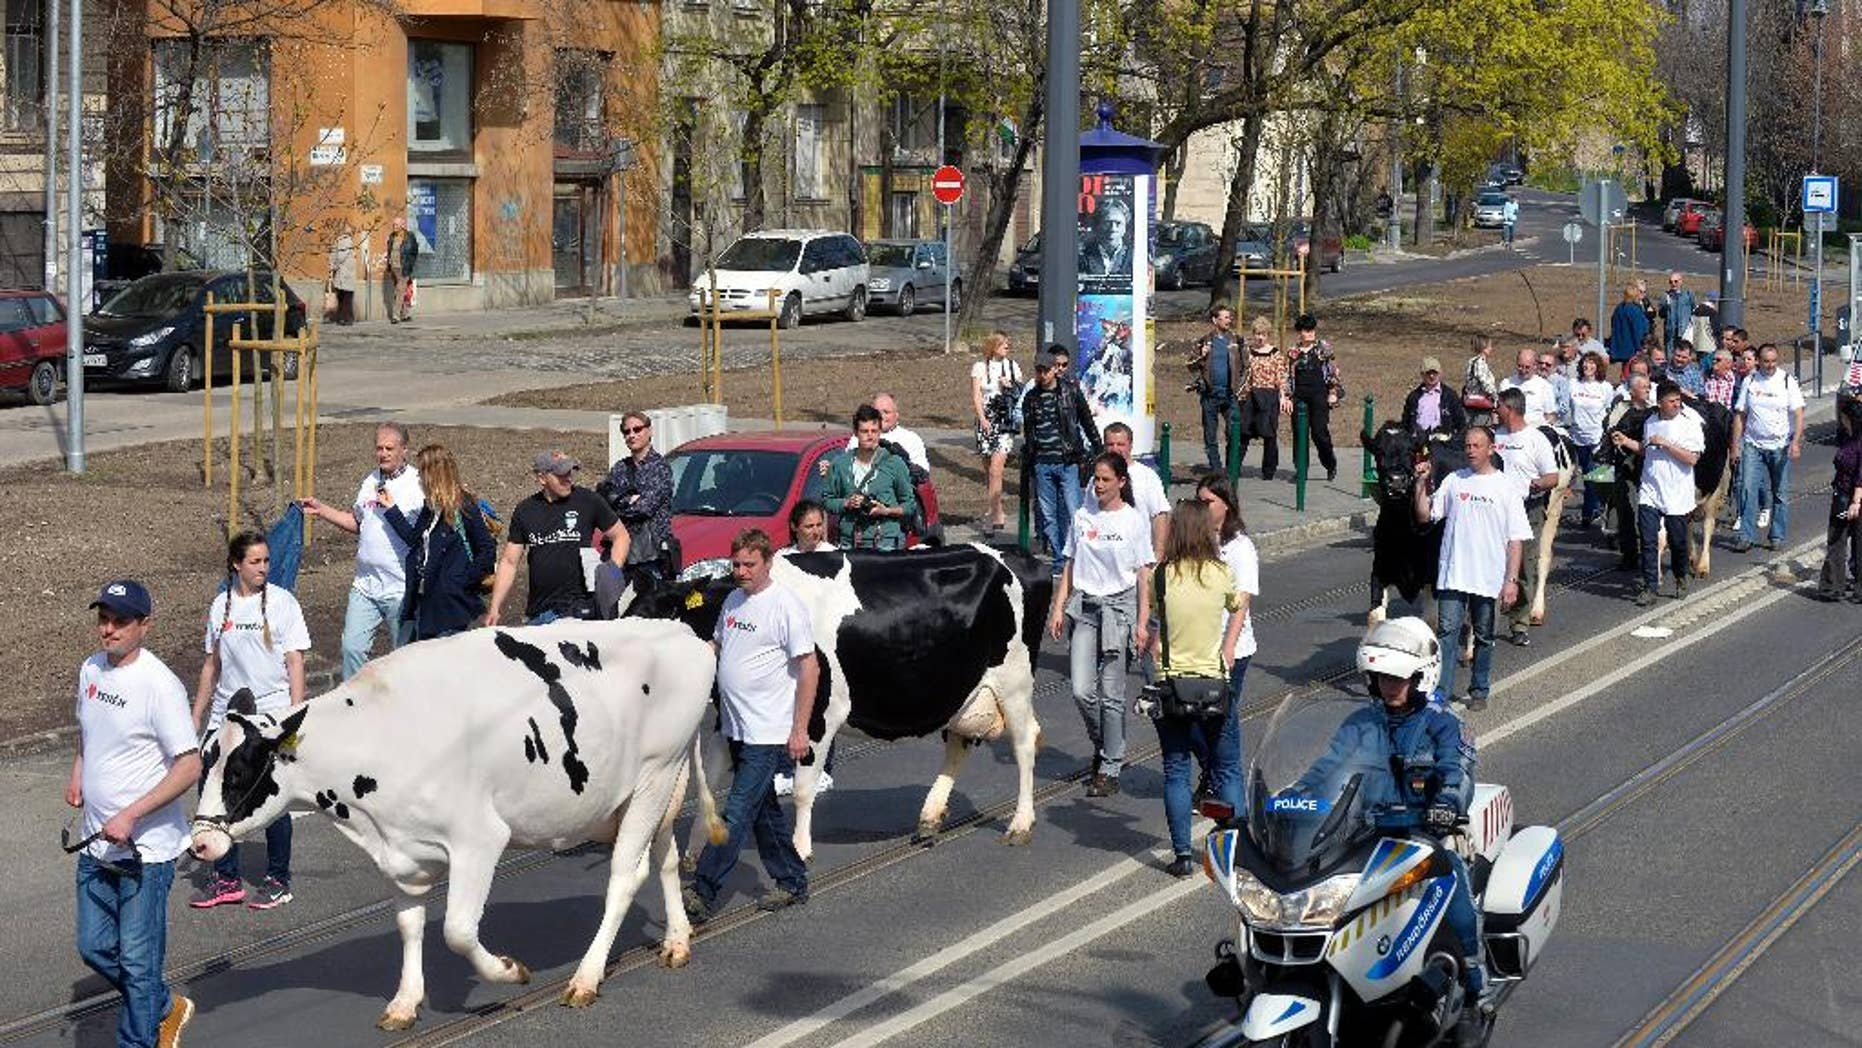 Participants of the dairy farmers demonstration march with their cows in the Becsi Street on their way towards the National Tax and Customs Officein Budapest, Hungary, Monday, April 4, 2016. They protested against cheap imports and tax evasion which they say are destroying fair competition and blocking their access to local markets. (Zoltan Mathe/MTI via AP)